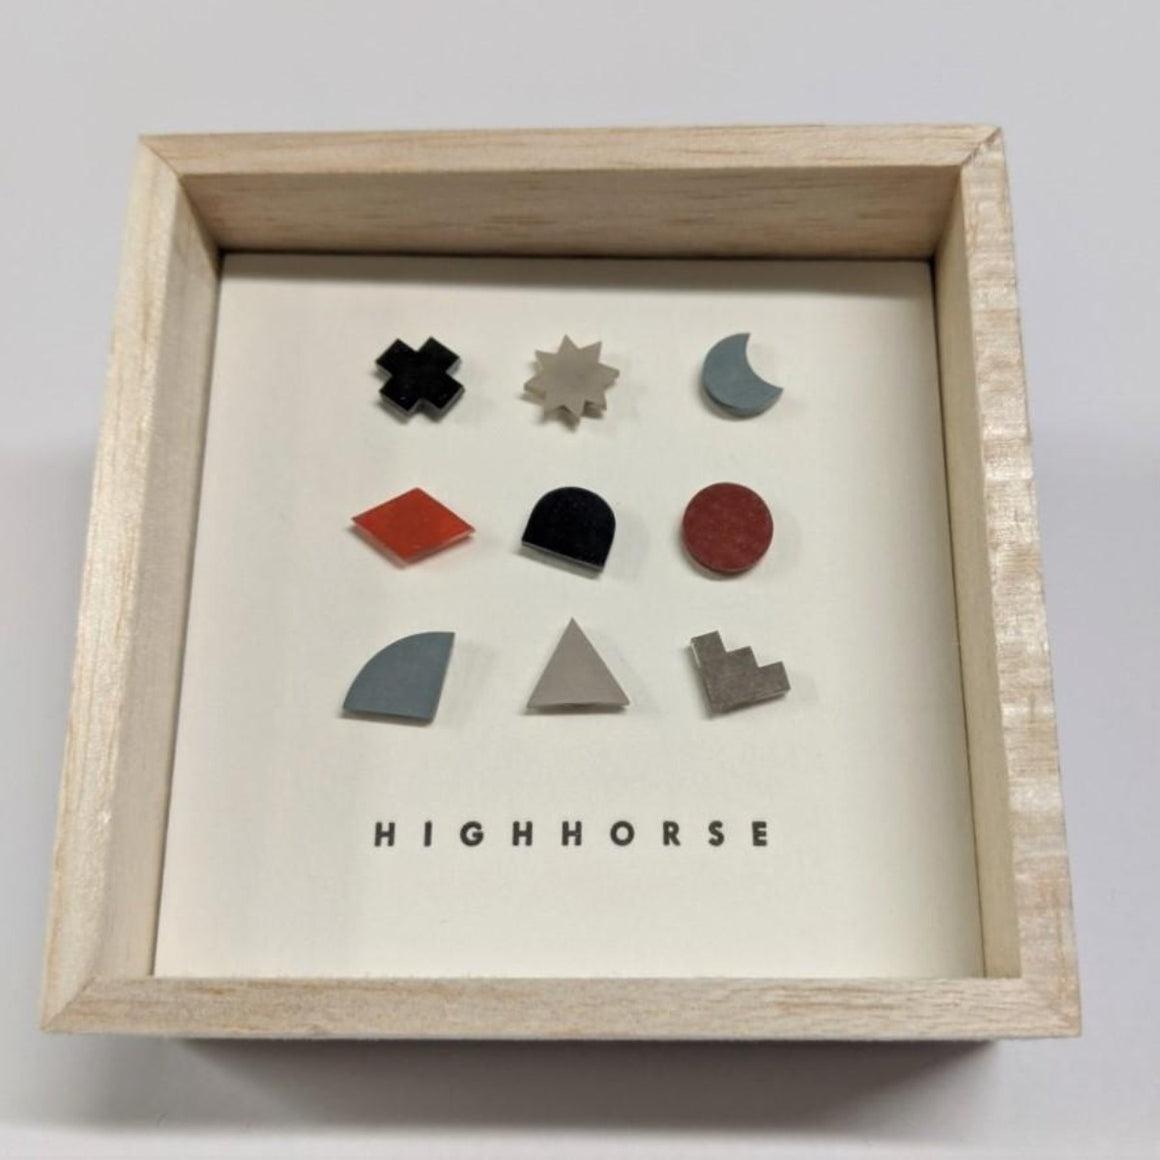 Timber box featuring earring studs including a variety of shapes which include colours of dark brown, mushroom, grey, brown and black